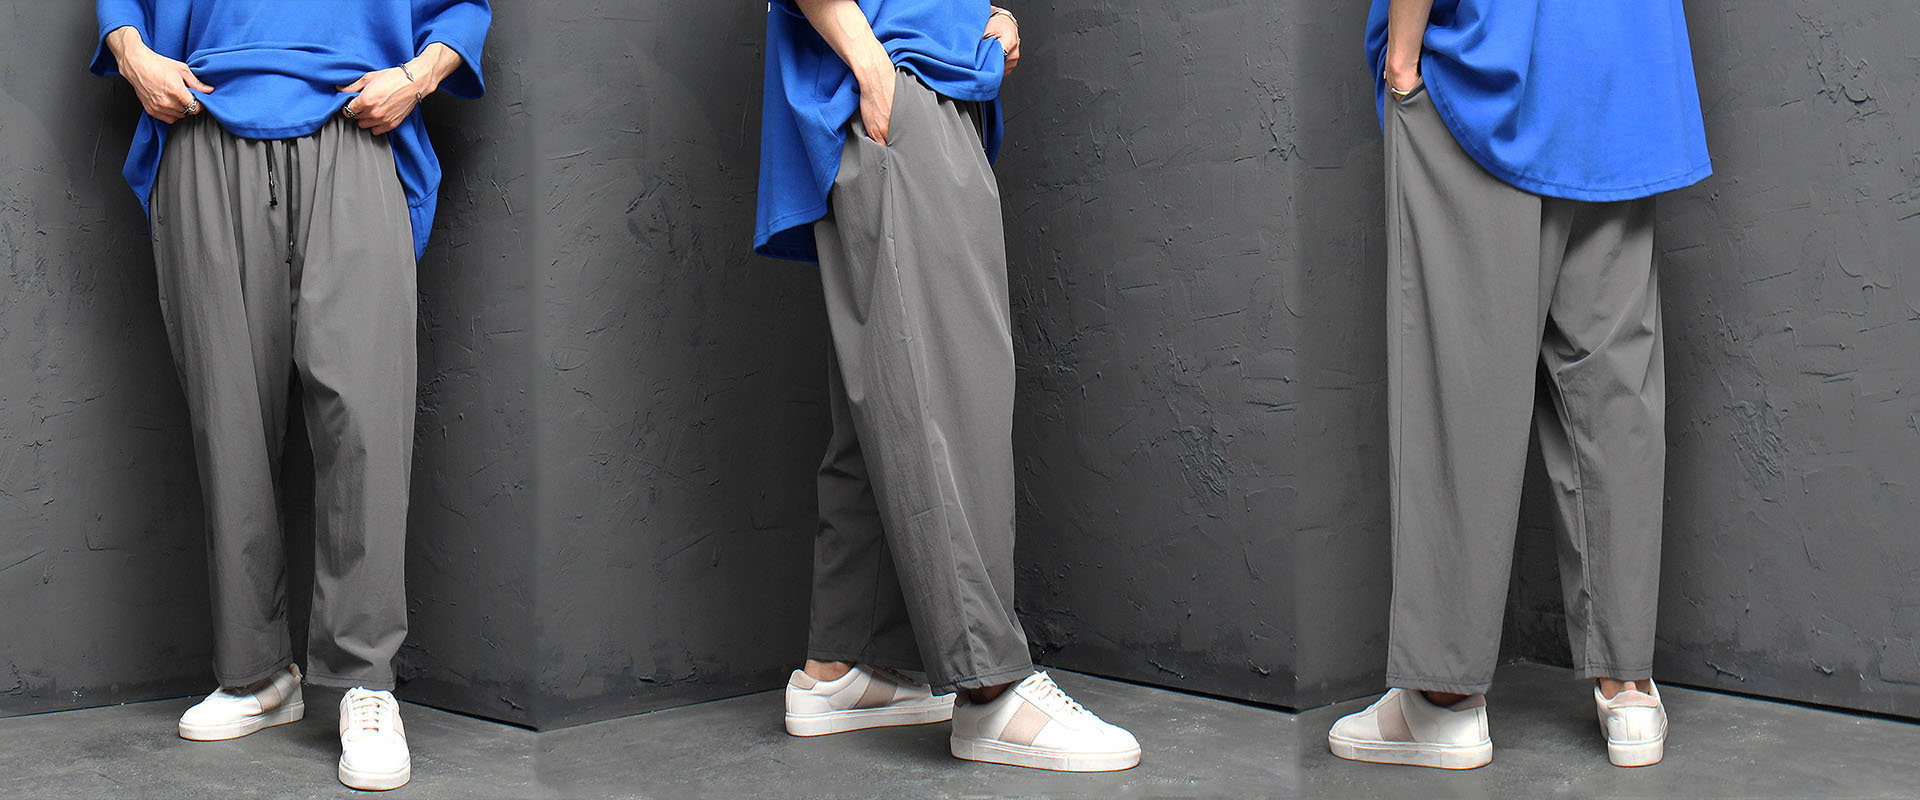 Iced Wide Elastic Band Baggy Pants 1033